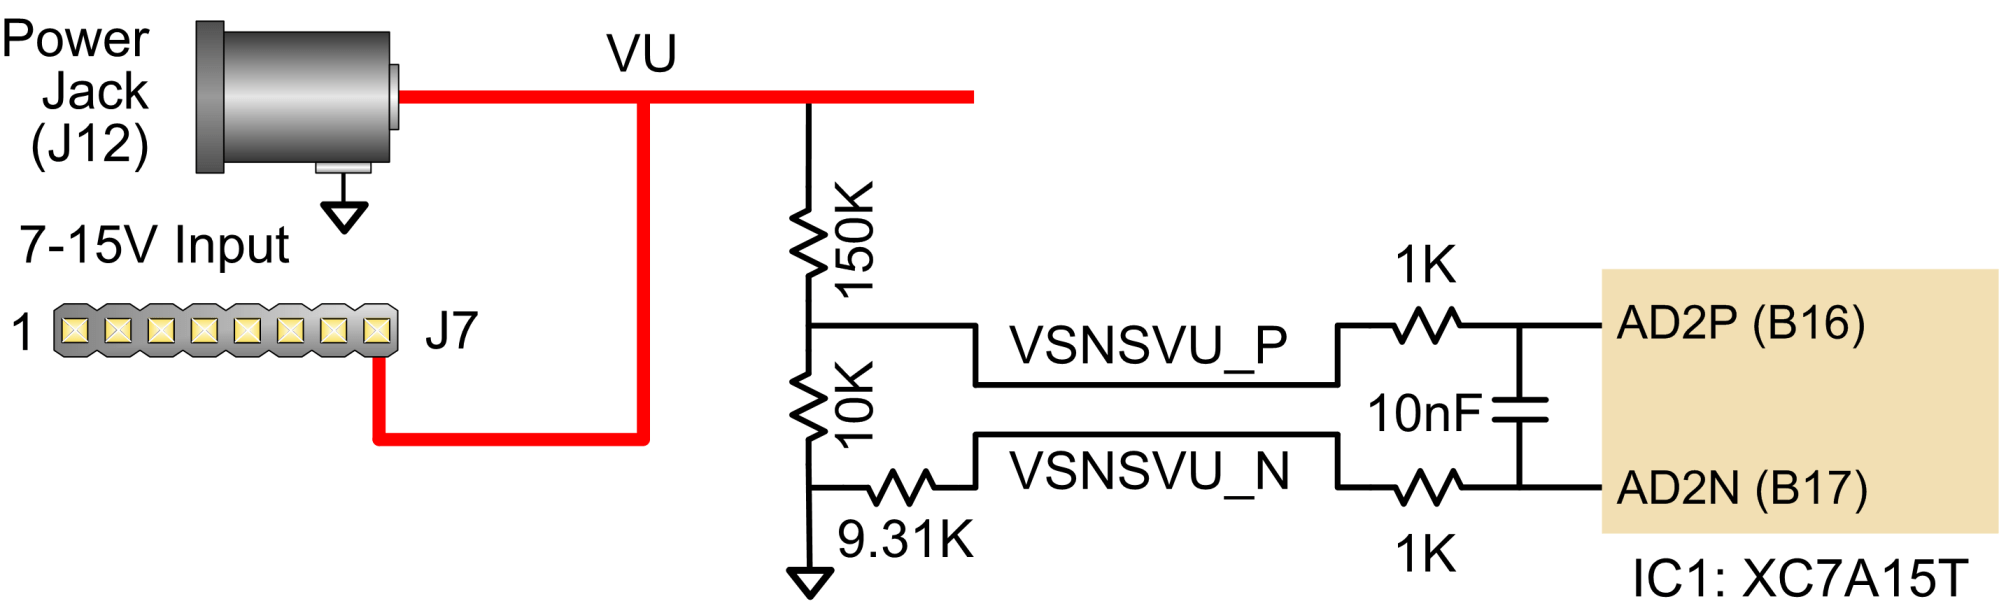 hight resolution of figure 3 1 1 monitoring external voltage supply